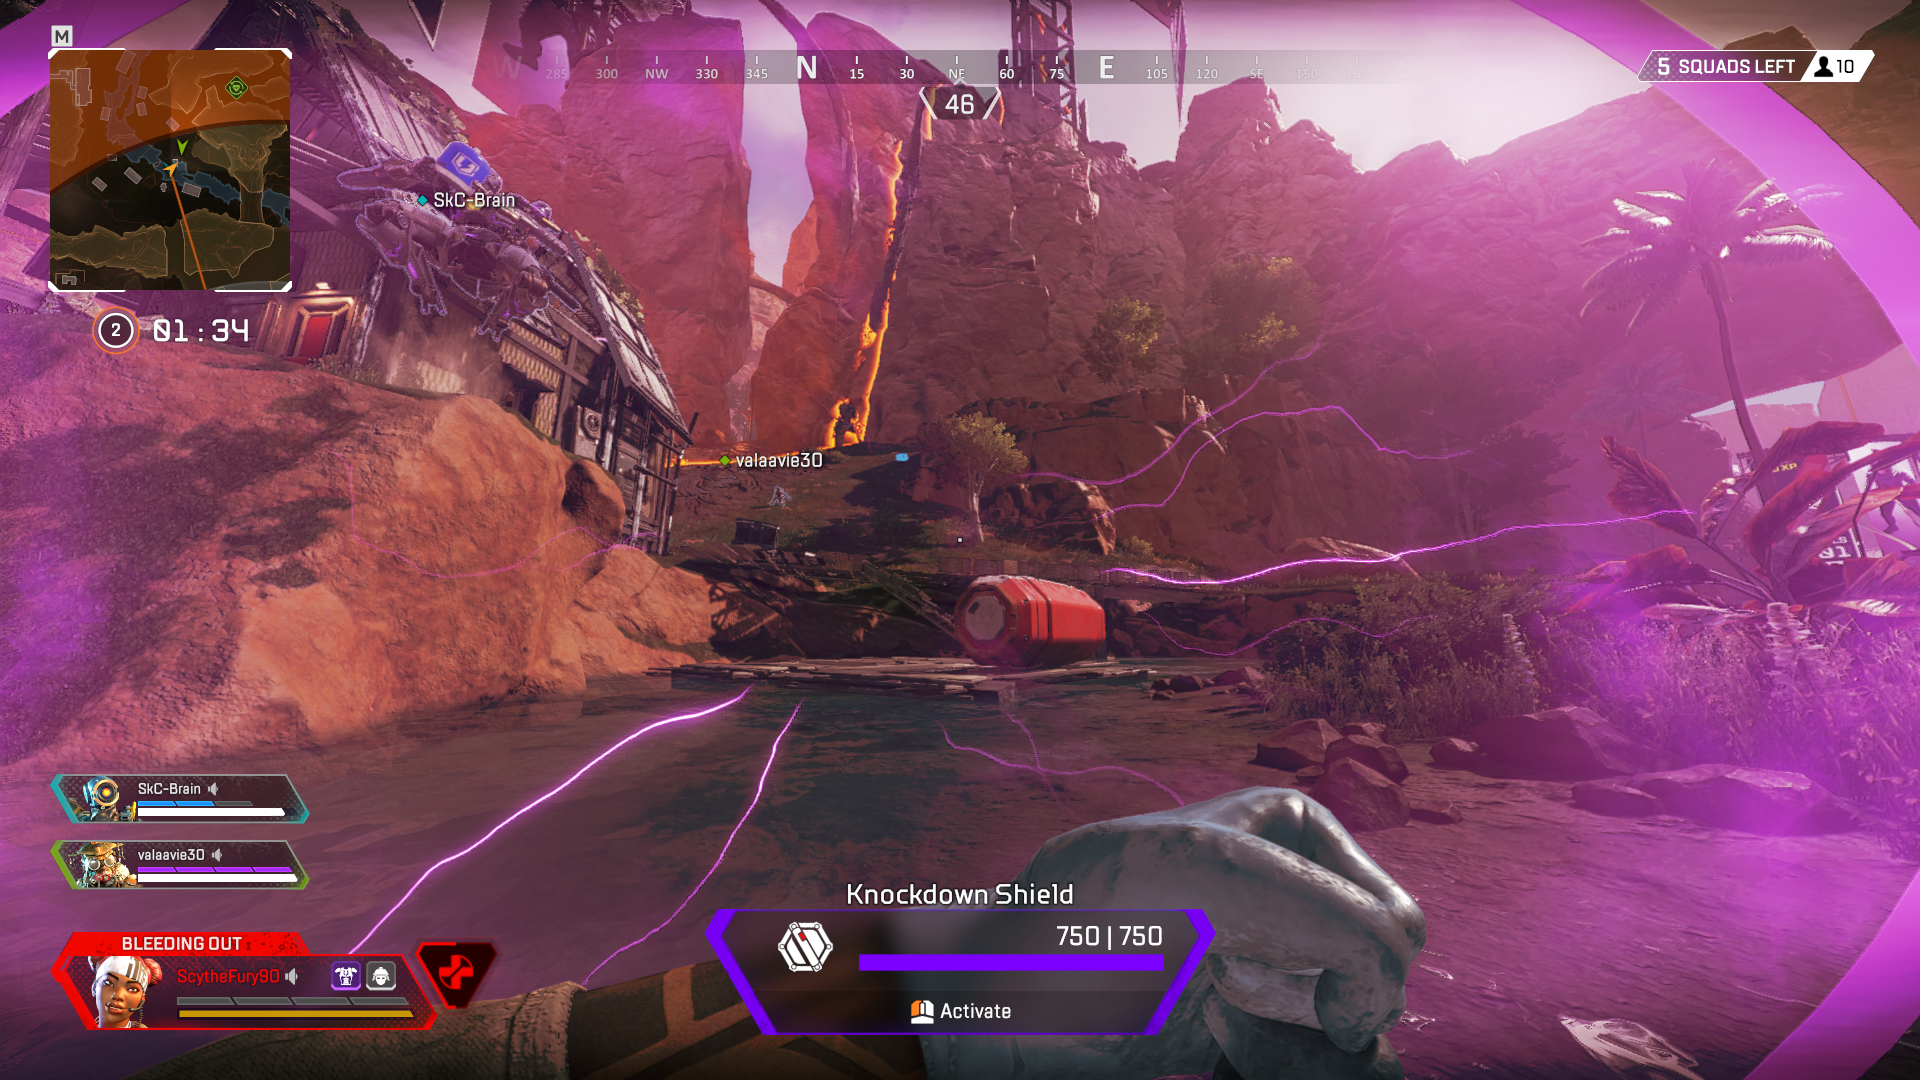 Knockdown Shield Apex Legends Pc Game Reviews Battle